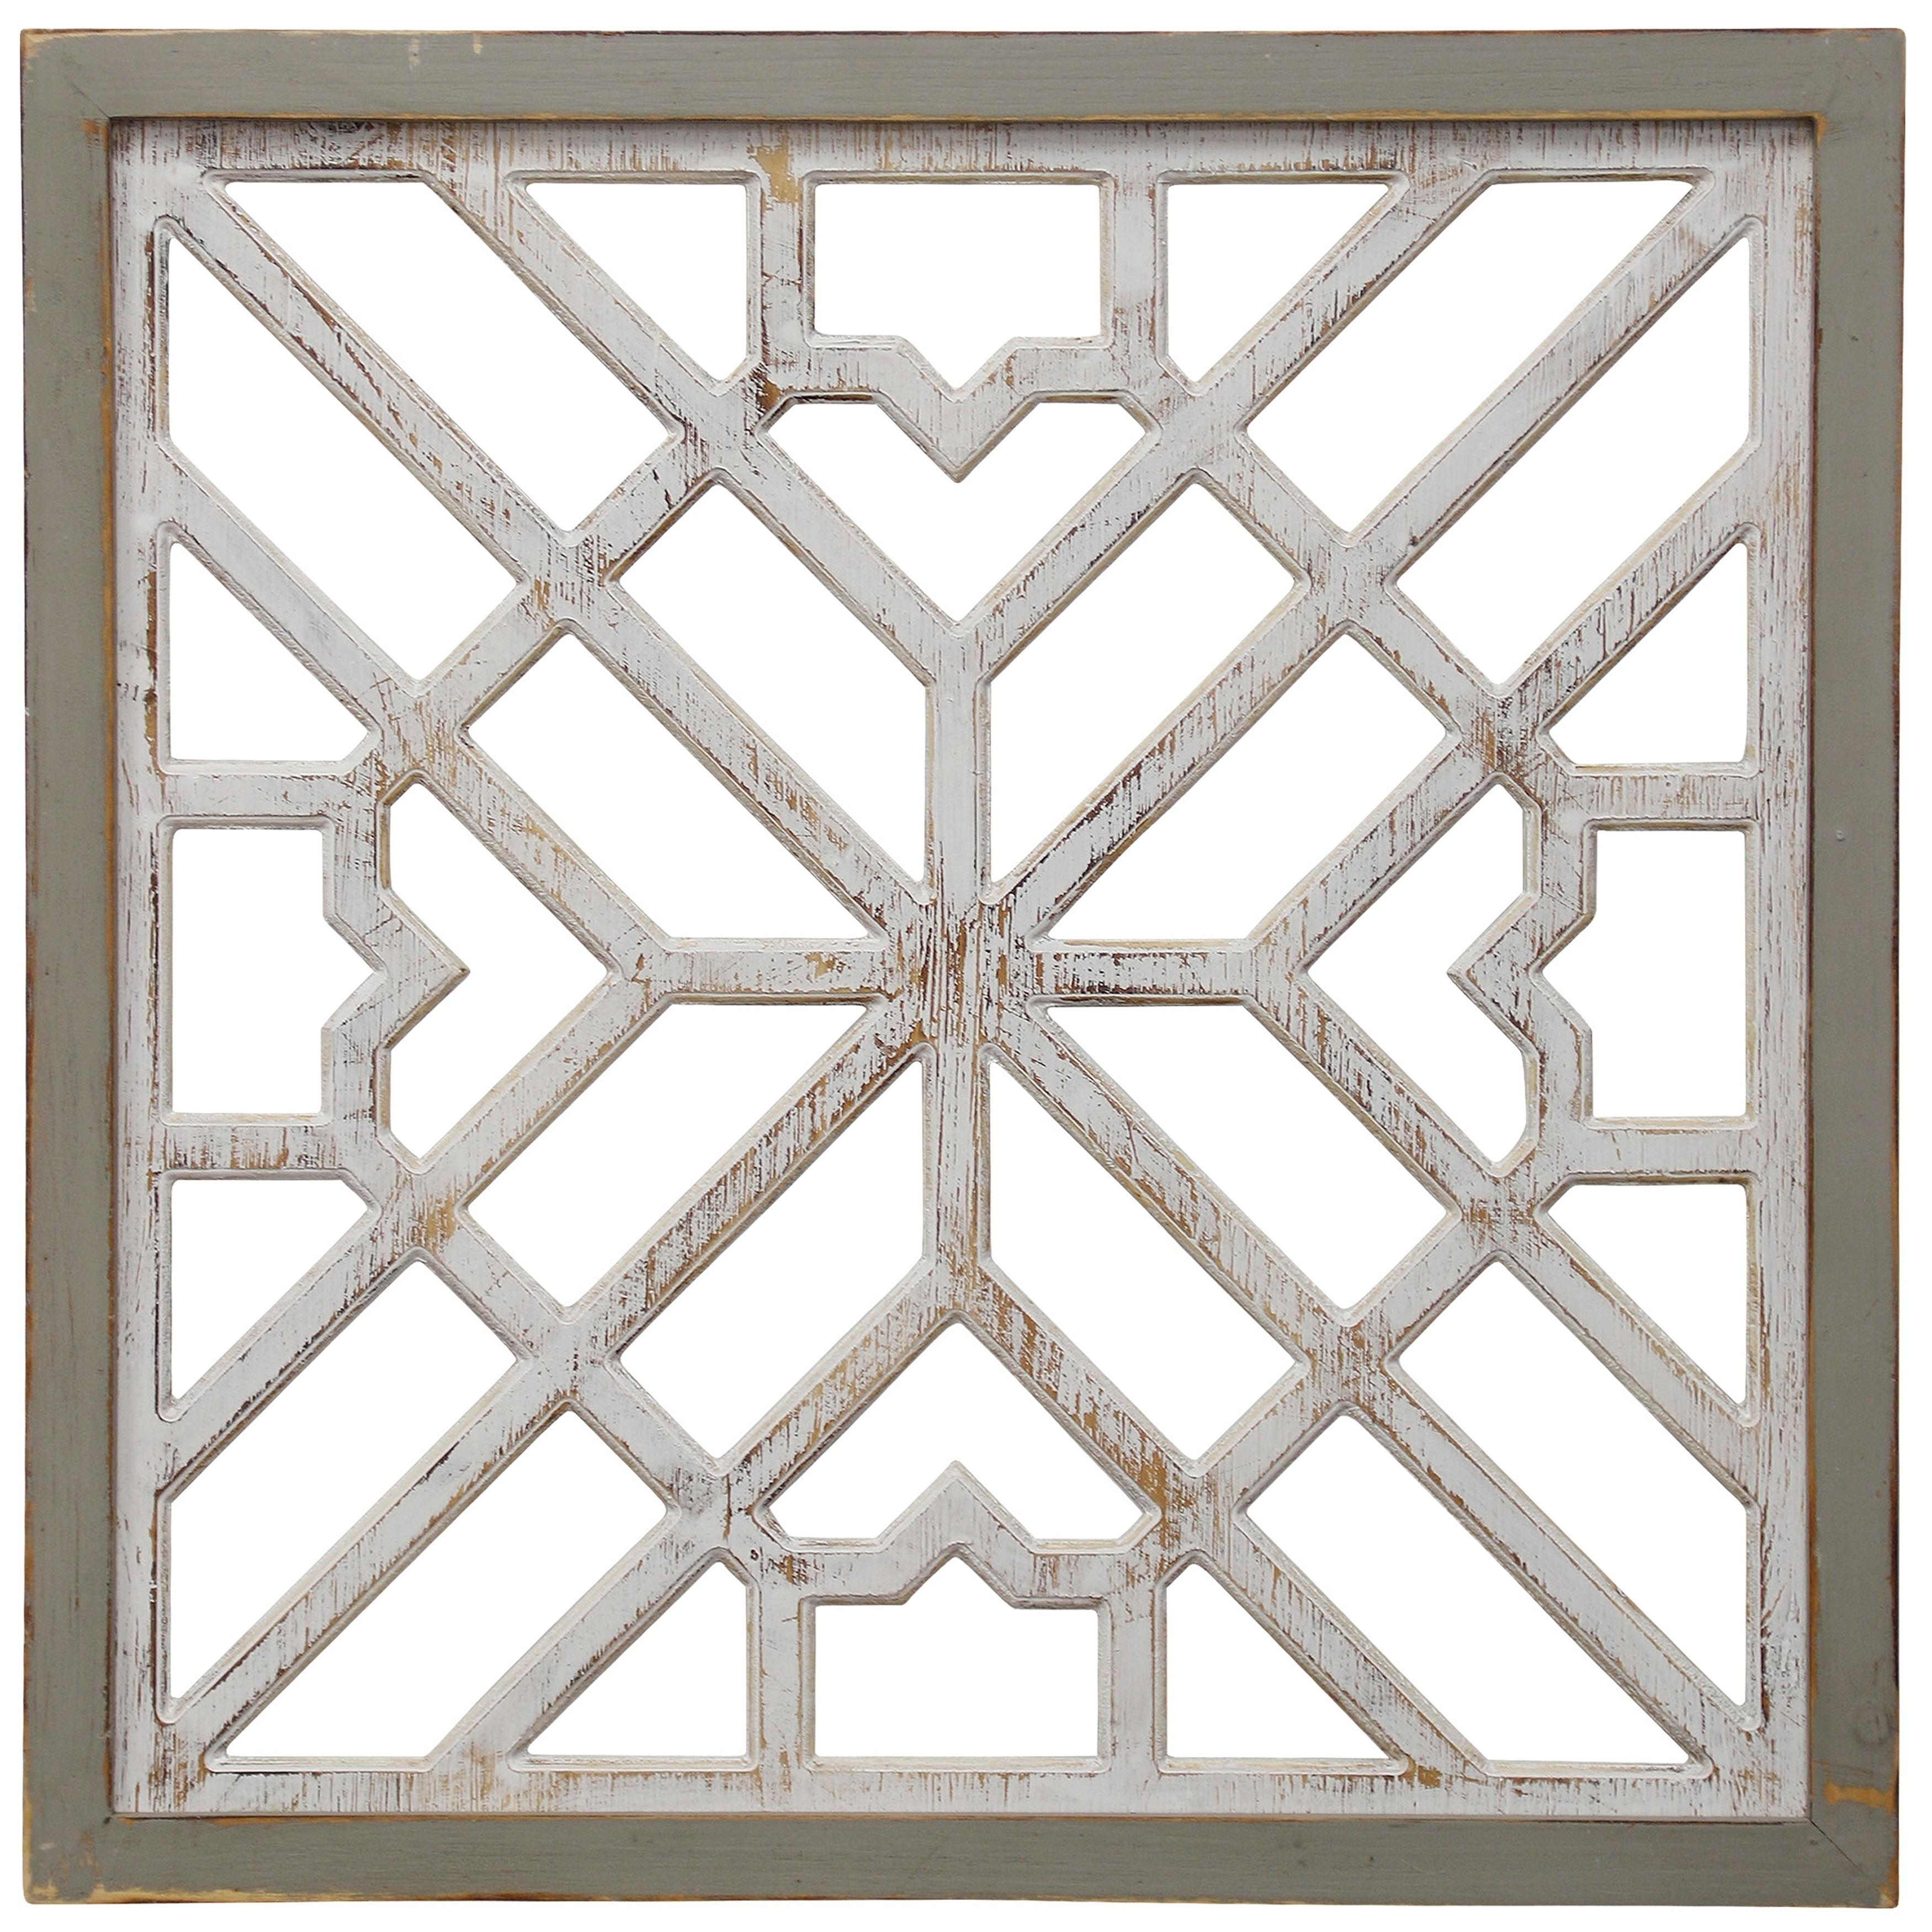 Colorful Rustic Wood /& Metal Wall Art Plaque Geometric Tiles Panel ~ Distressed